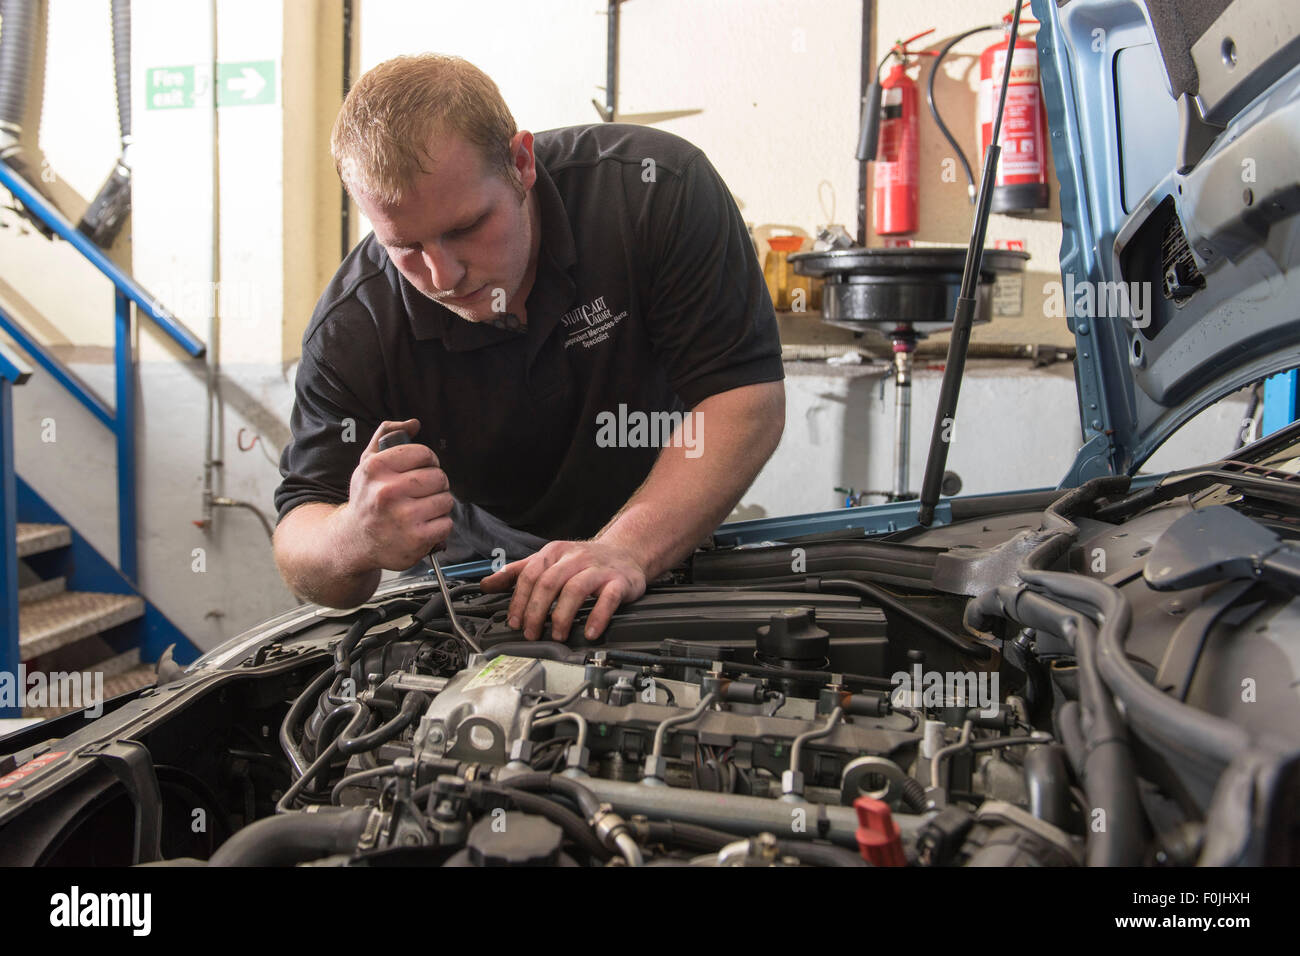 A car mechanic performing routine maintenance on a car in a car garage during an MOT. - Stock Image